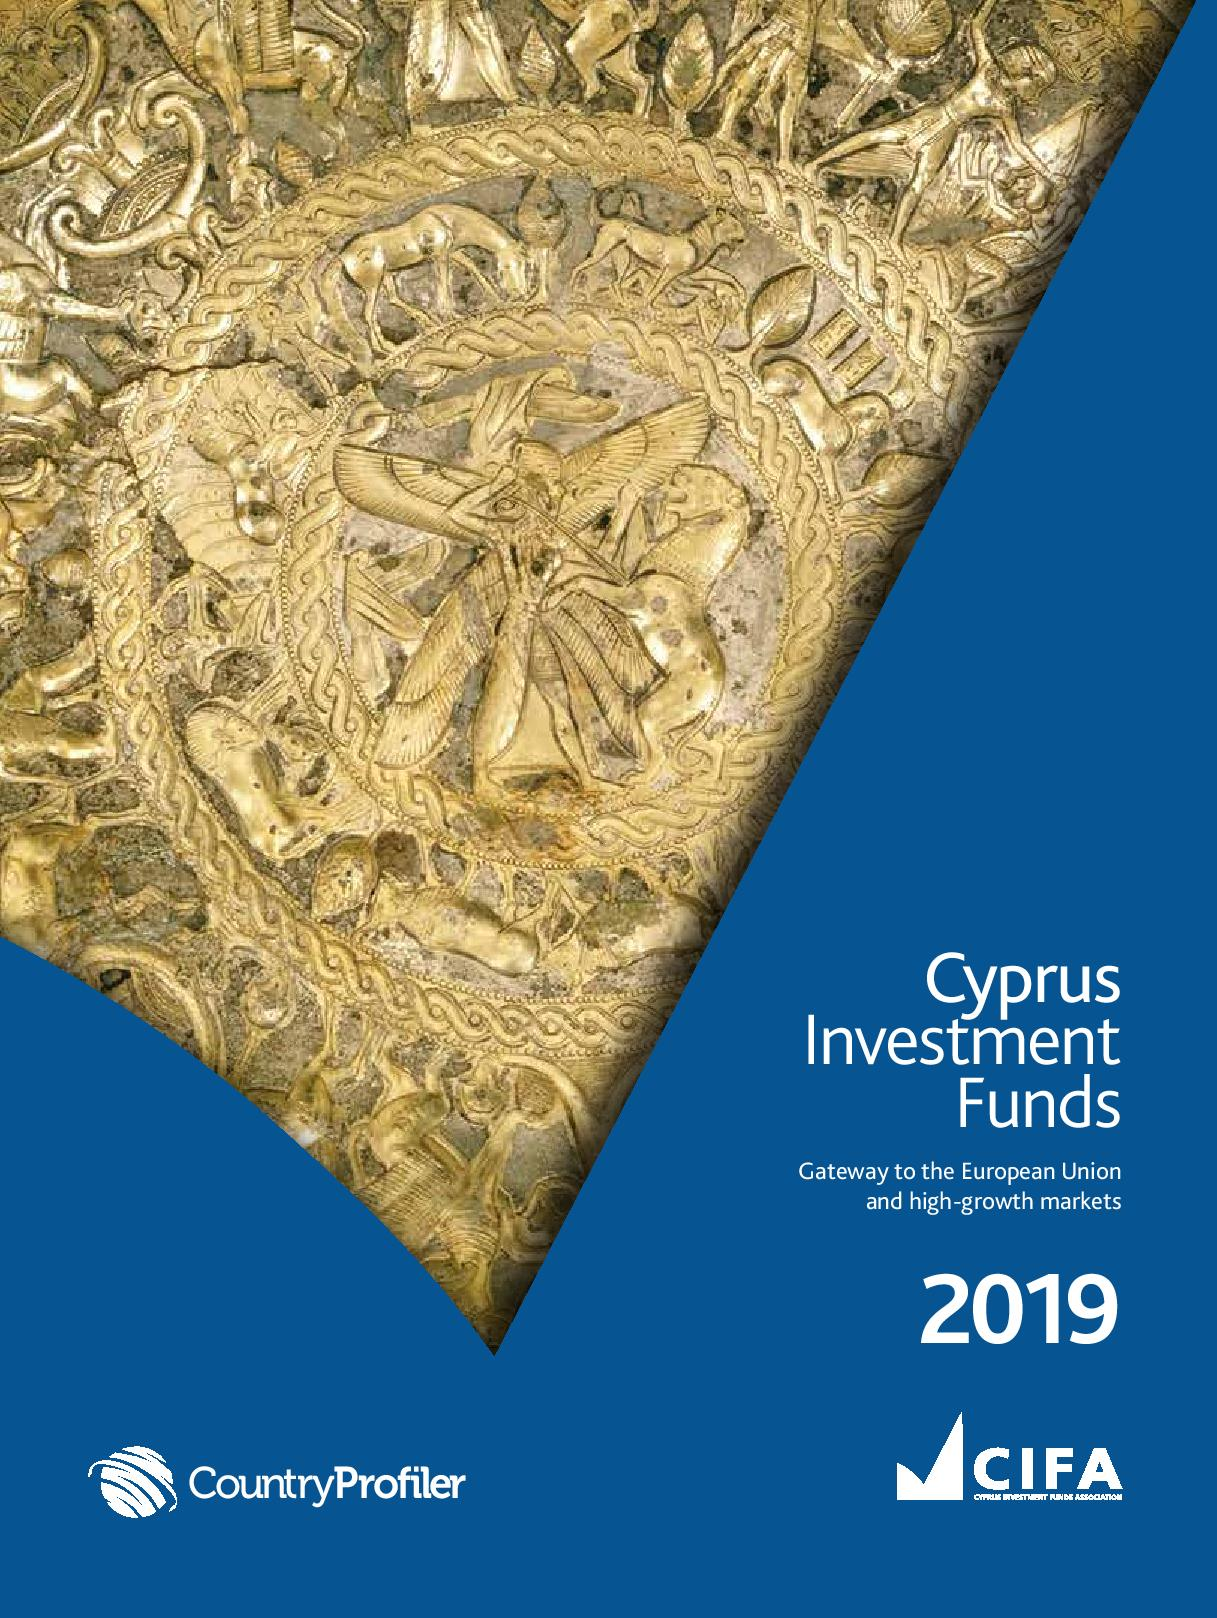 CIFA Investment Funds Guide 2019